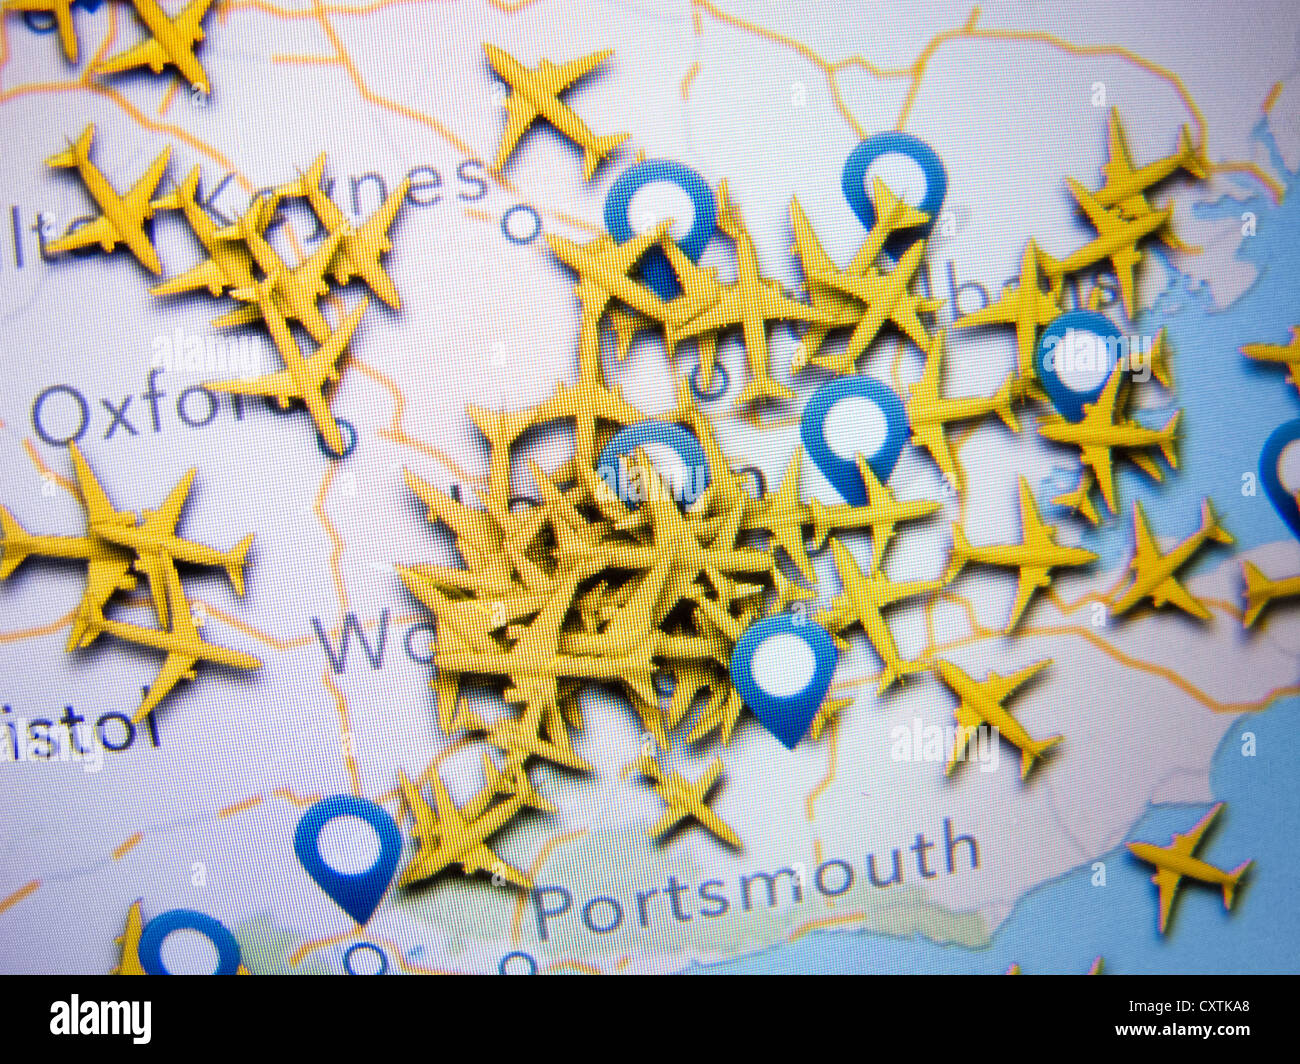 Realtime aircraft radar location many aircraft in congested